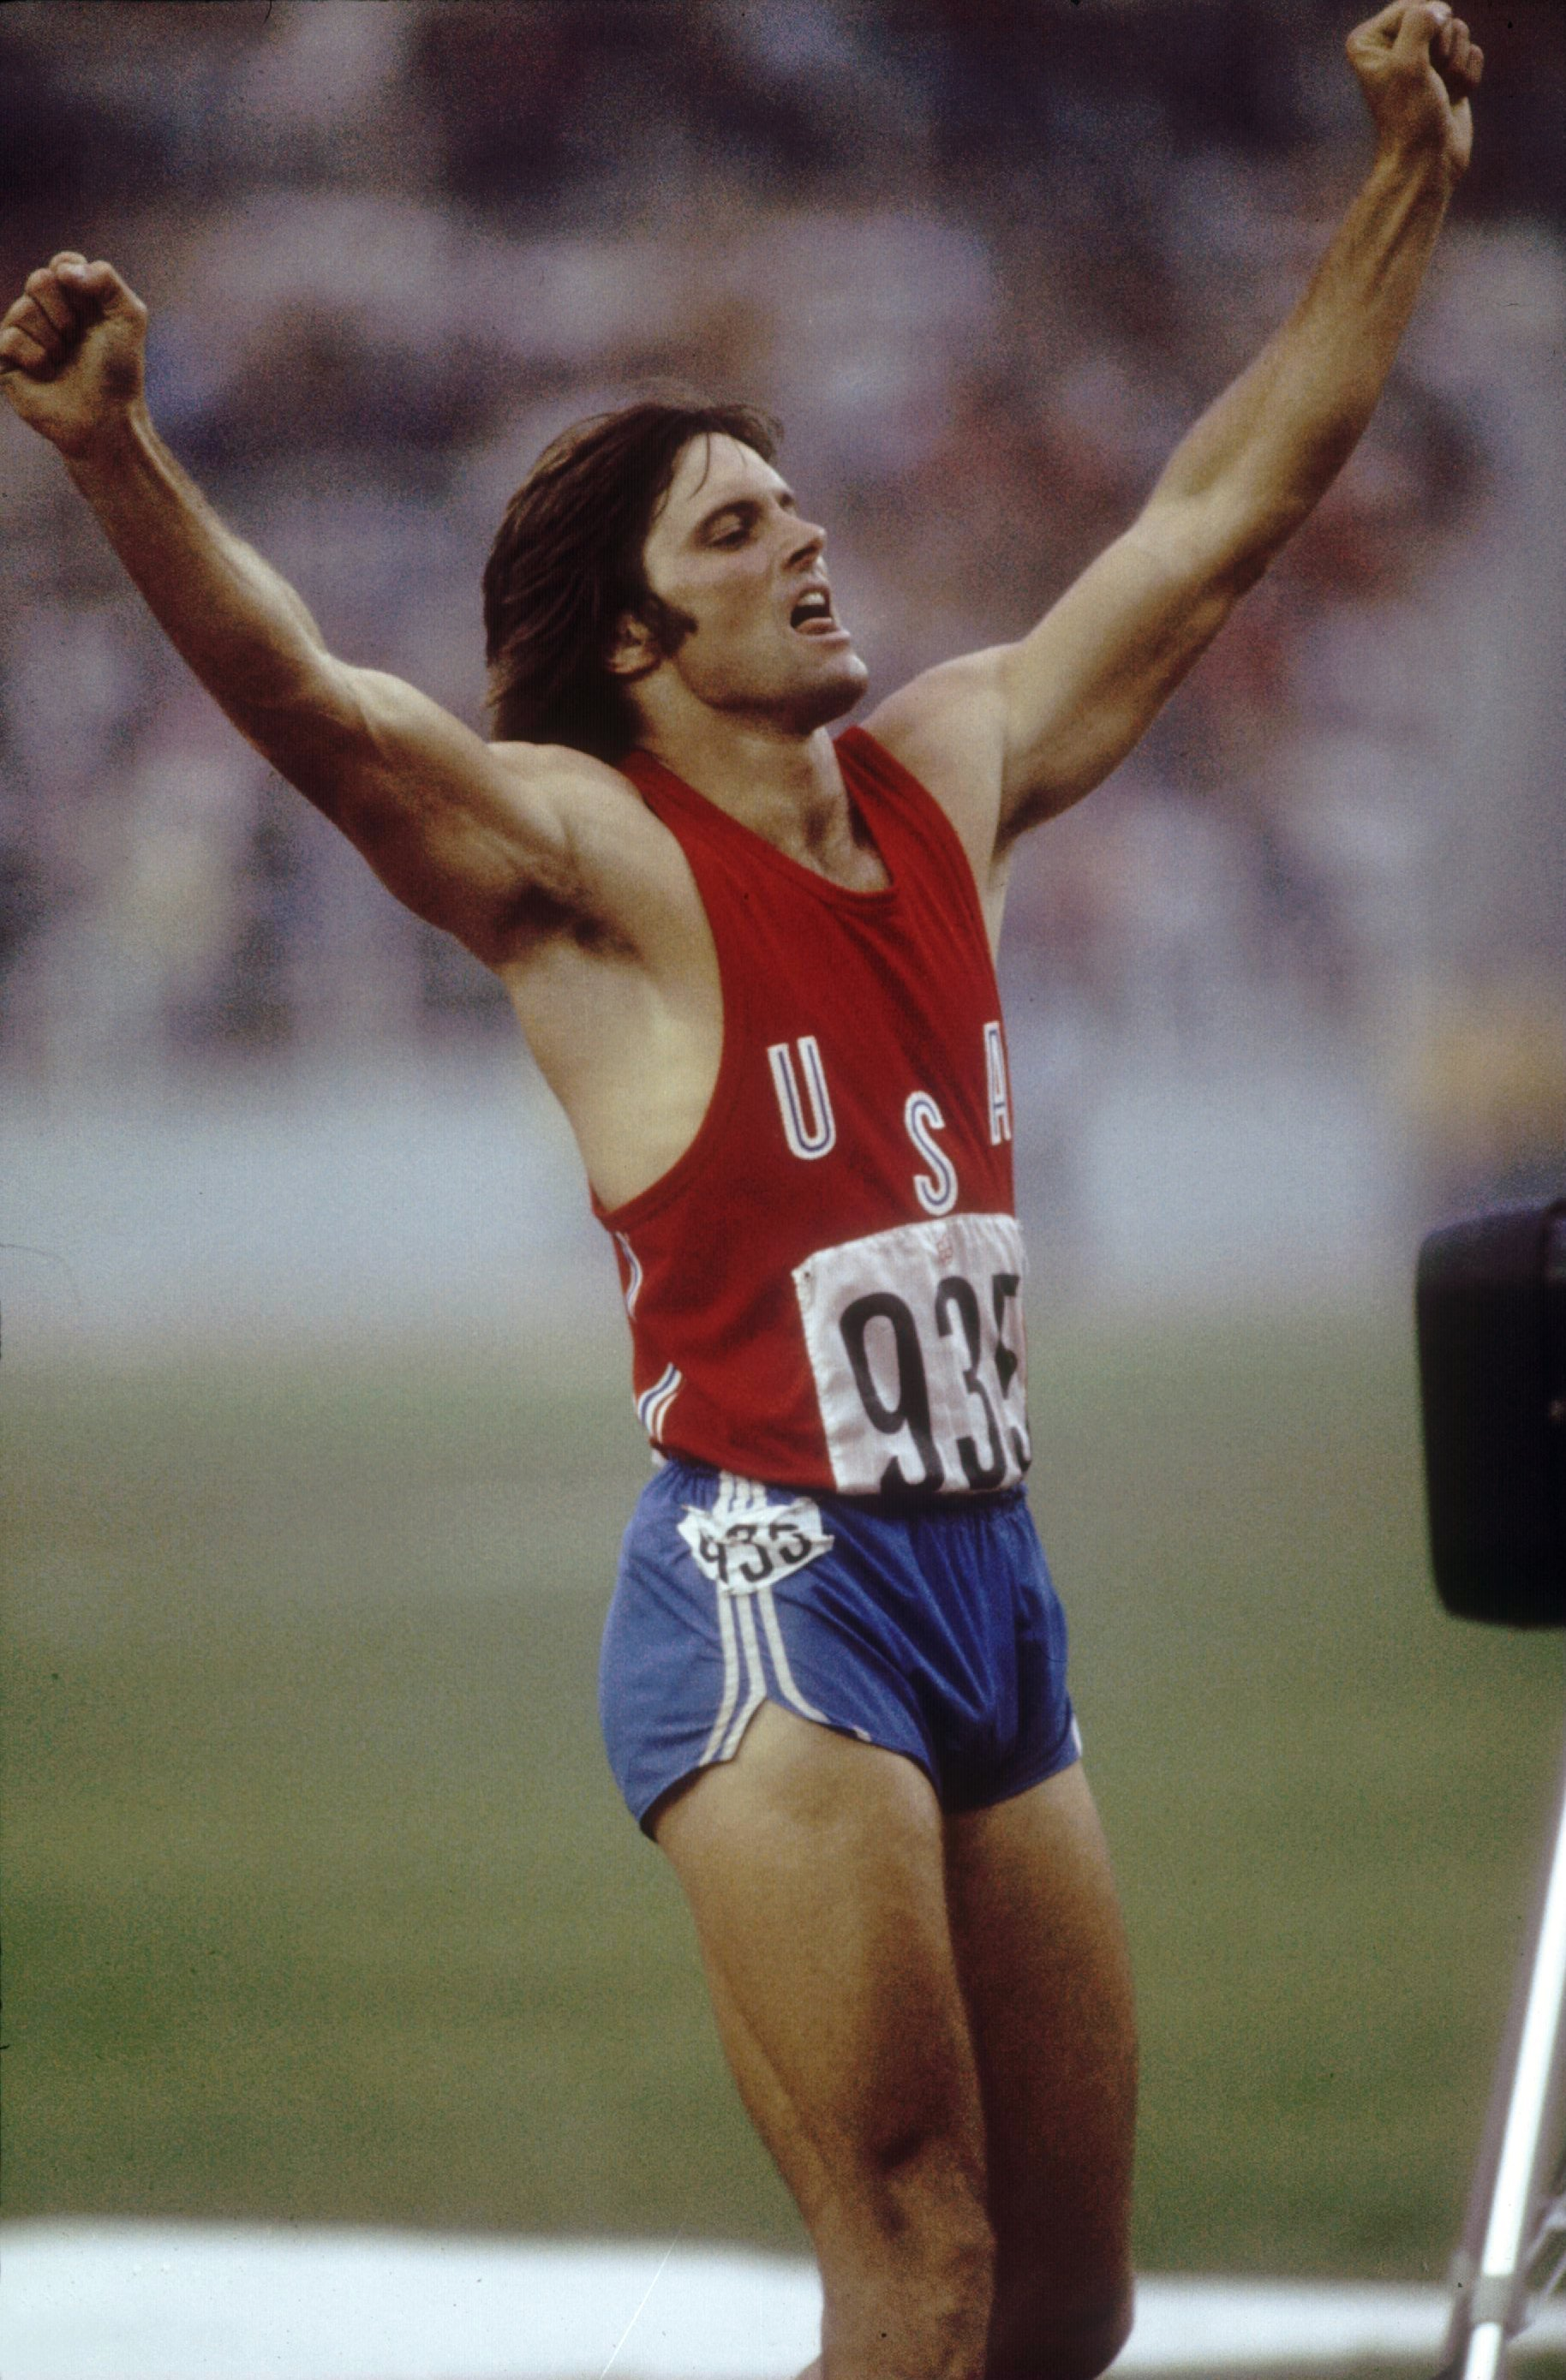 Bruce Jenner of the USA celebrates during his record setting performance in the decathlon in the 1976, Summer Olympics in Montreal, Canada | Photo: Getty Images